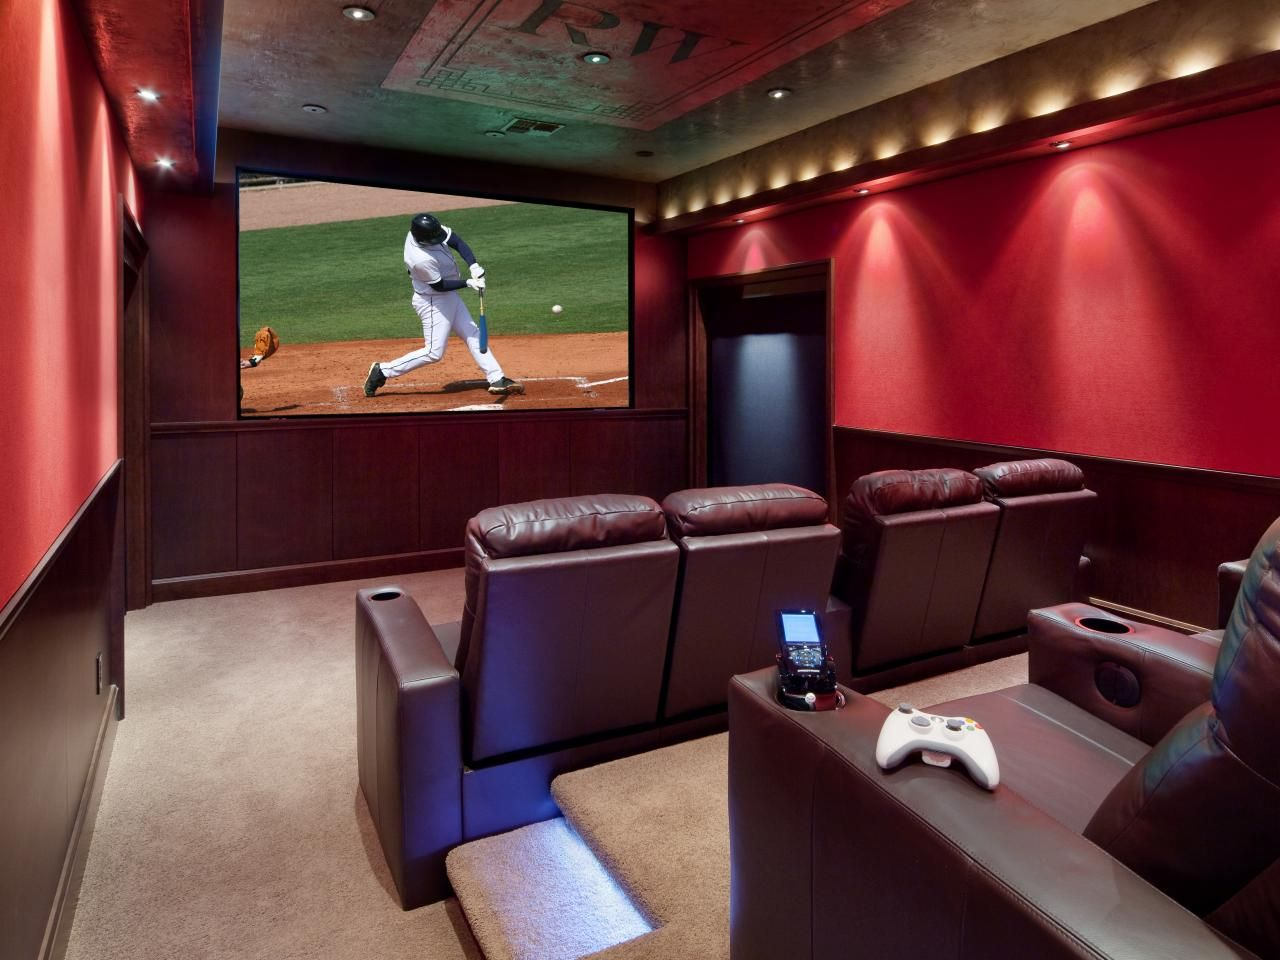 Designer Home Theaters & Media Rooms: Inspirational Pictures ...